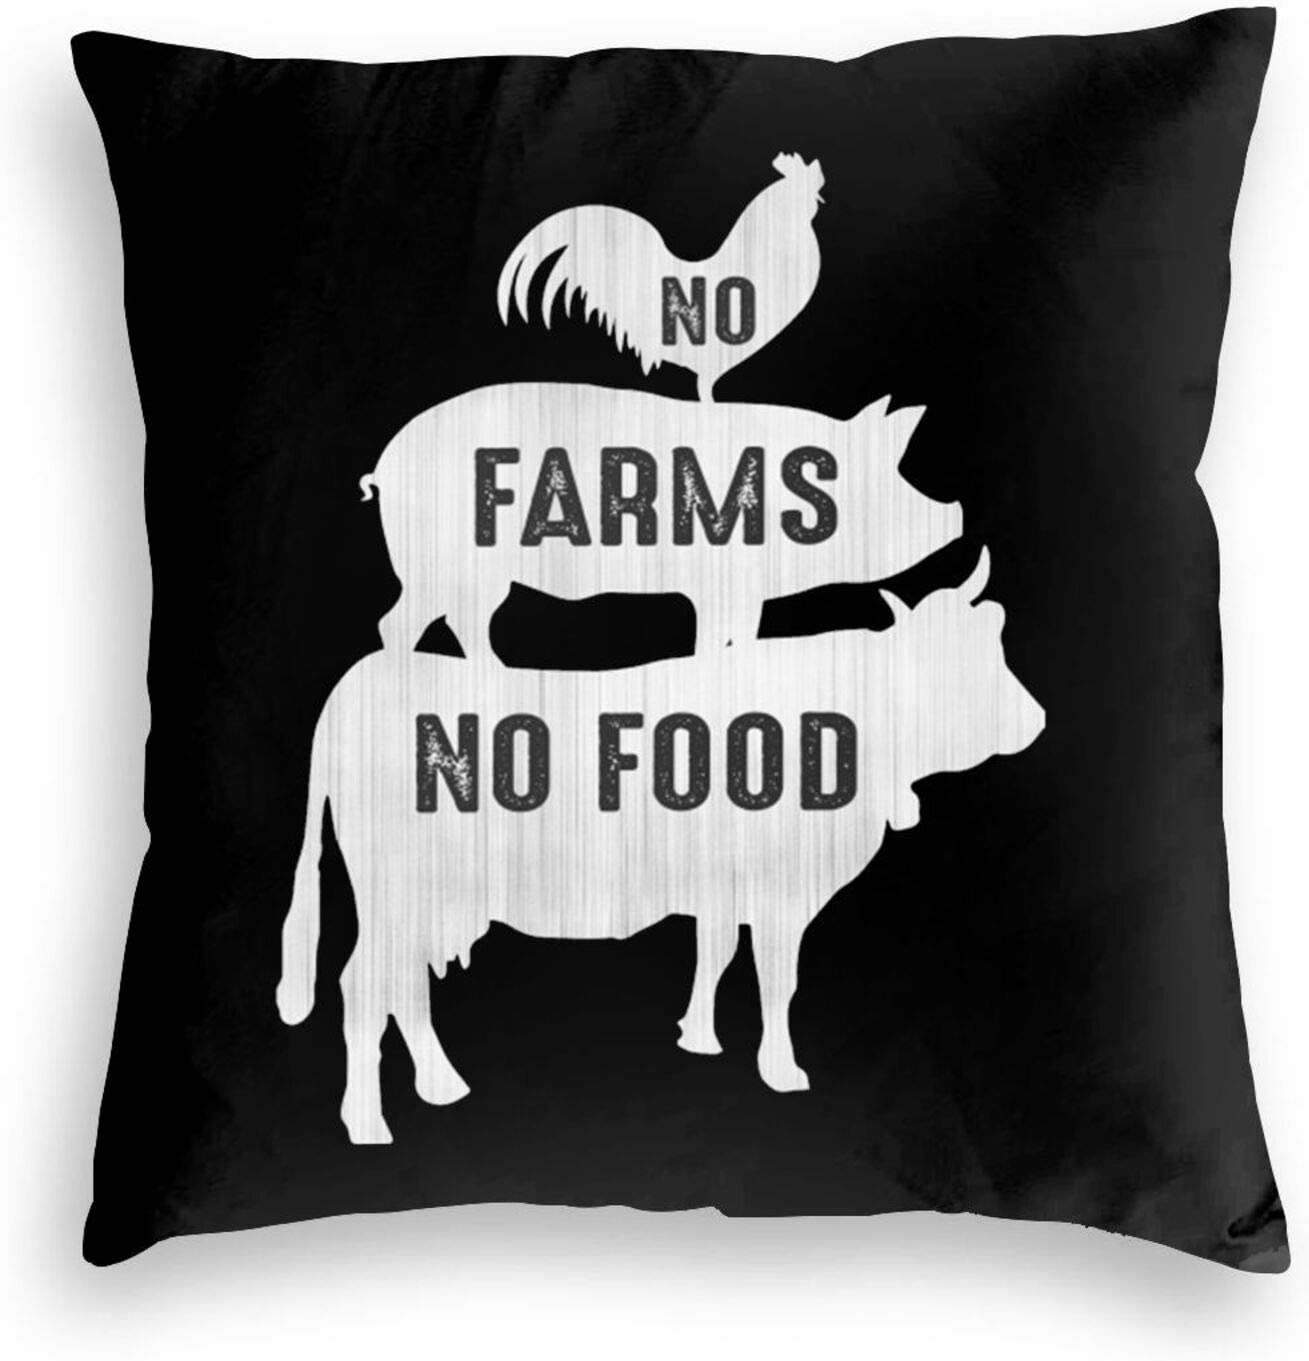 No Farms No Food Square Bed Pillowcase Cushion Cover Sofa Decoration Pillowcase Soft Velvet Cushion Cover